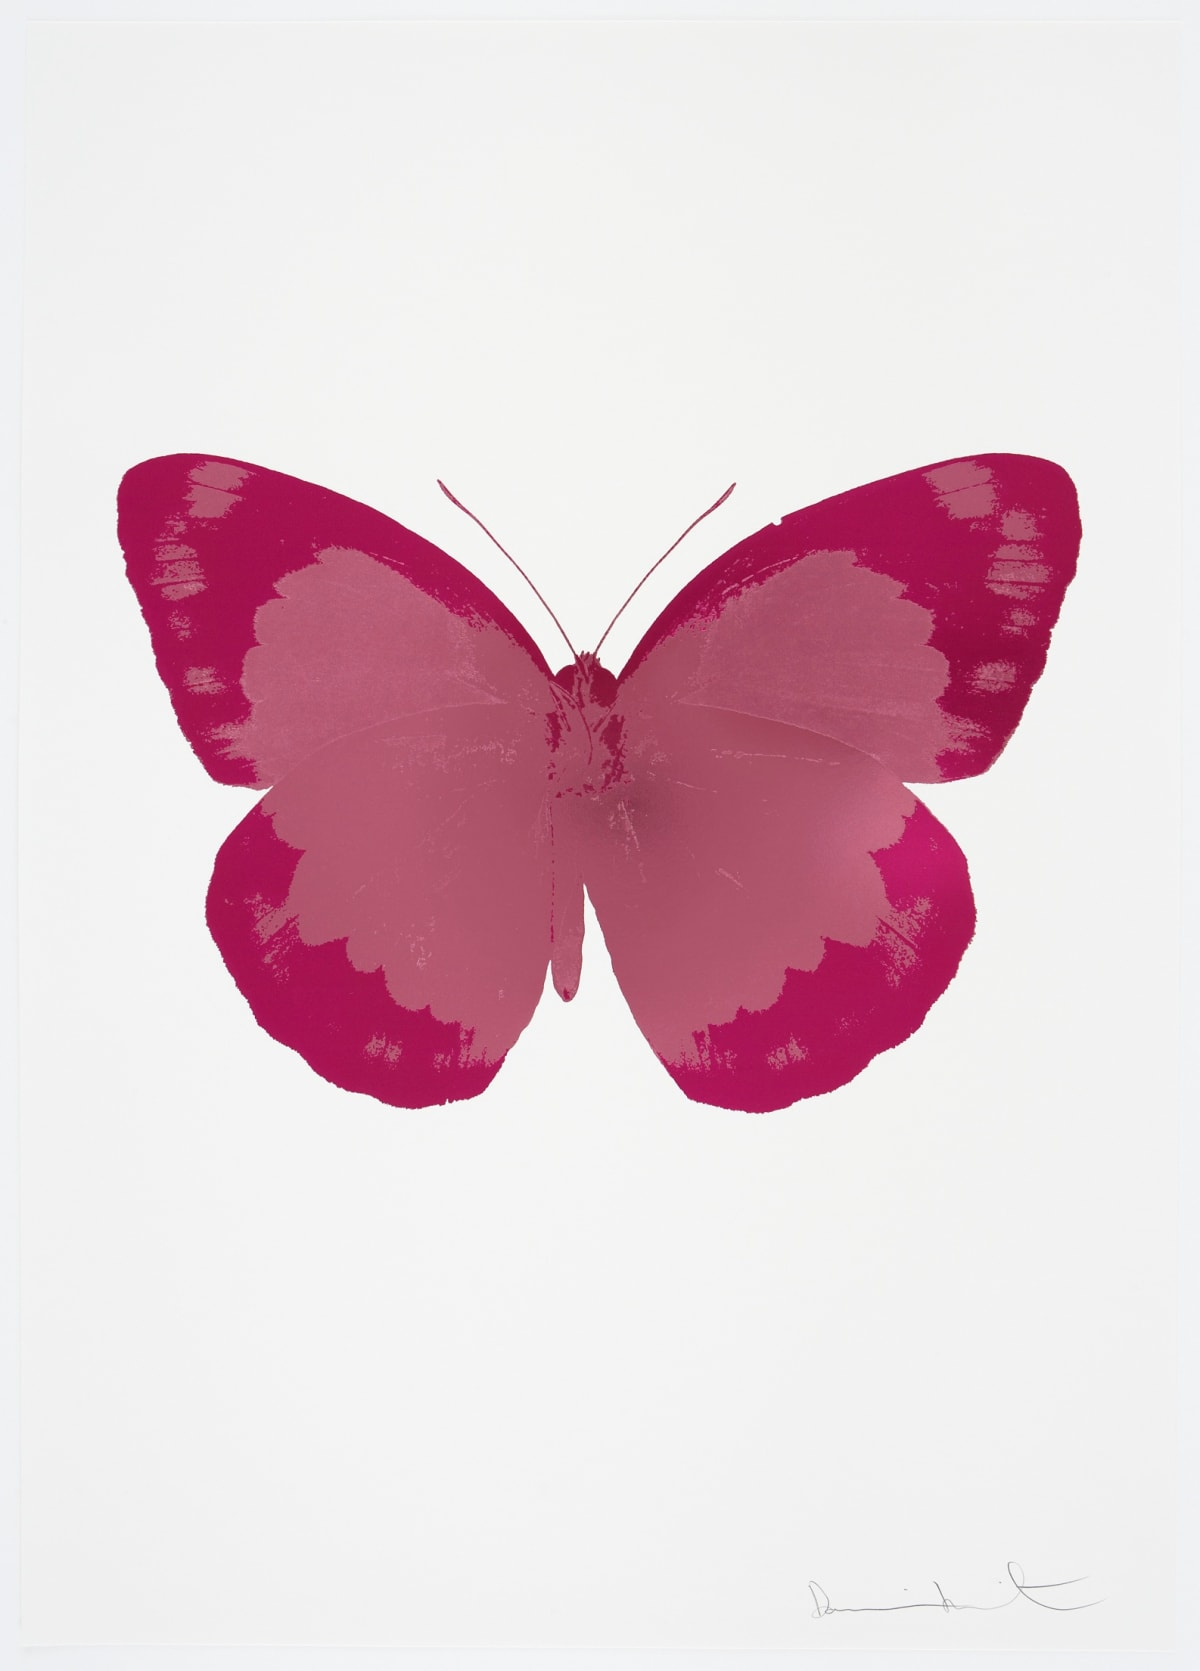 Damien Hirst The Souls II - Loganberry Pink/Fuchsia Pink/Blind Impression, 2010 2 colour foil block on 300gsm Arches 88 archival paper. Signed and numbered. Published by Paul Stolper and Other Criteria 72 x 51cm OC7840 / 658-23 Edition of 15